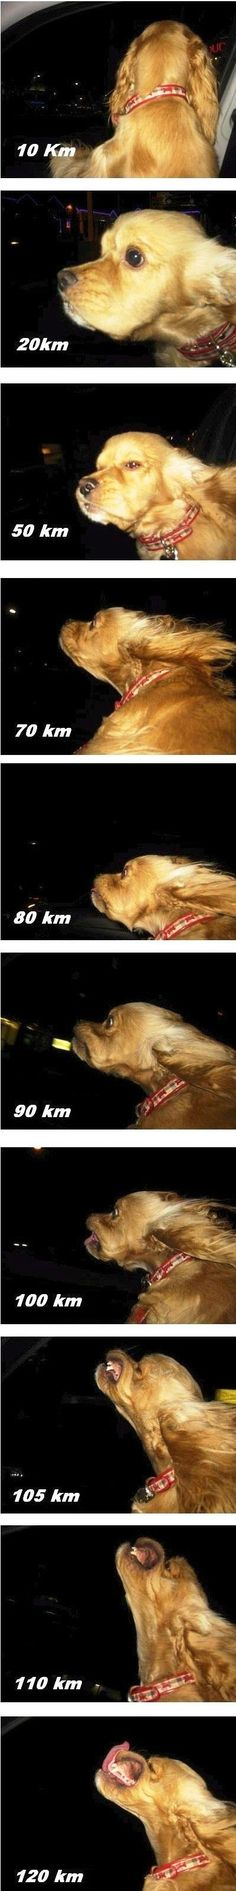 Dogs at different speeds: http://alligator-sunglasses.com/post/16579471177/a-dogs-face-at-different-speeds